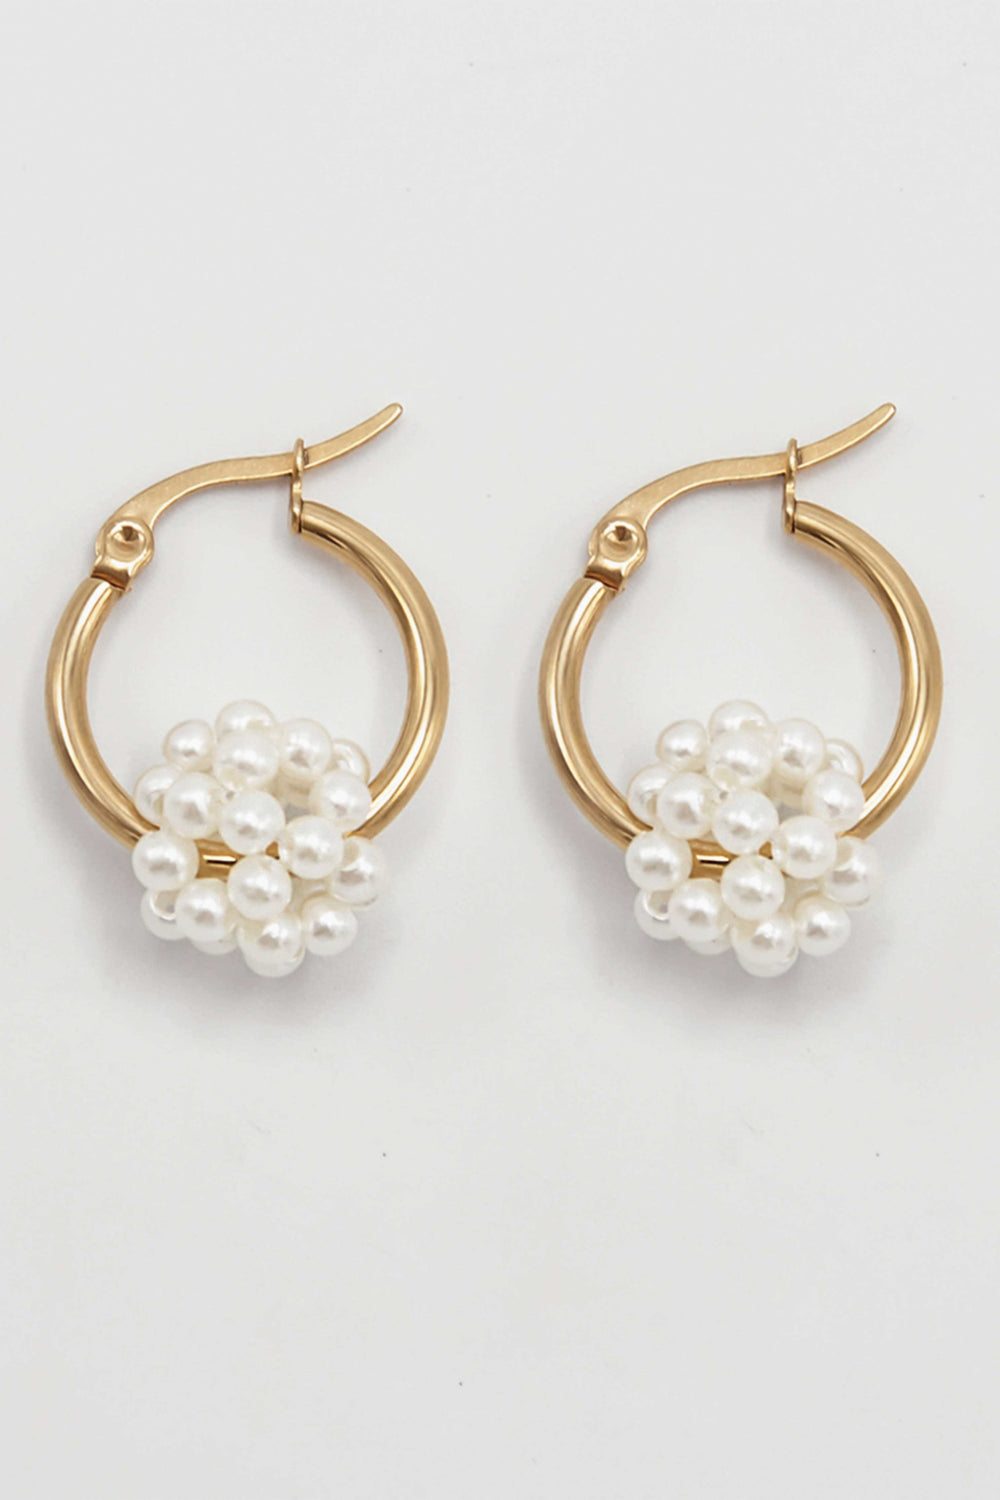 YOUR'E A JEWEL EARRINGS | Women's Online Shopping | CHICLEFRIQUE